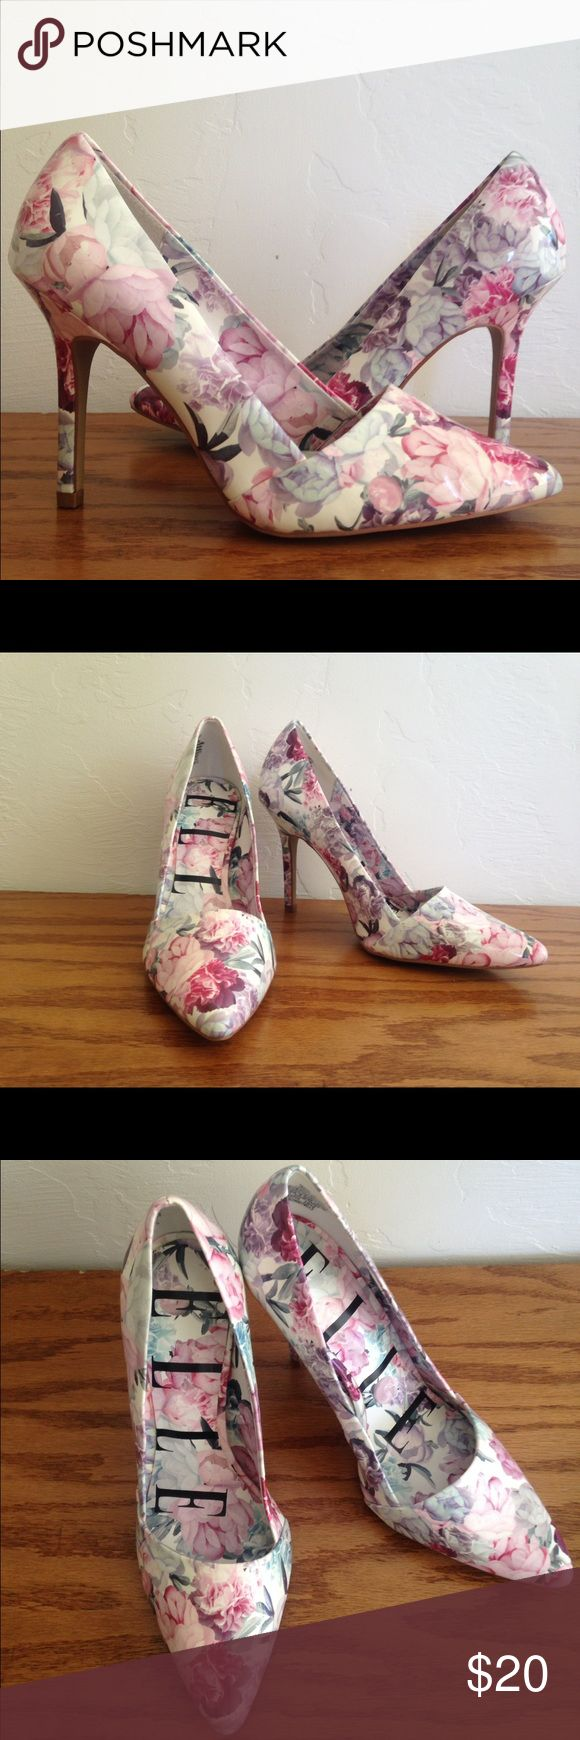 Elle floral heels These Elle floral heels are adorable and in GREAT condition, they have a 4inch  heel and are Summer ready, colors about all shades of pink frm light to dark some earth leave colors just gorgeous ! FREE GIFT WITH EVERY PURCHASE :)  bundle and save!! Elle Shoes Heels